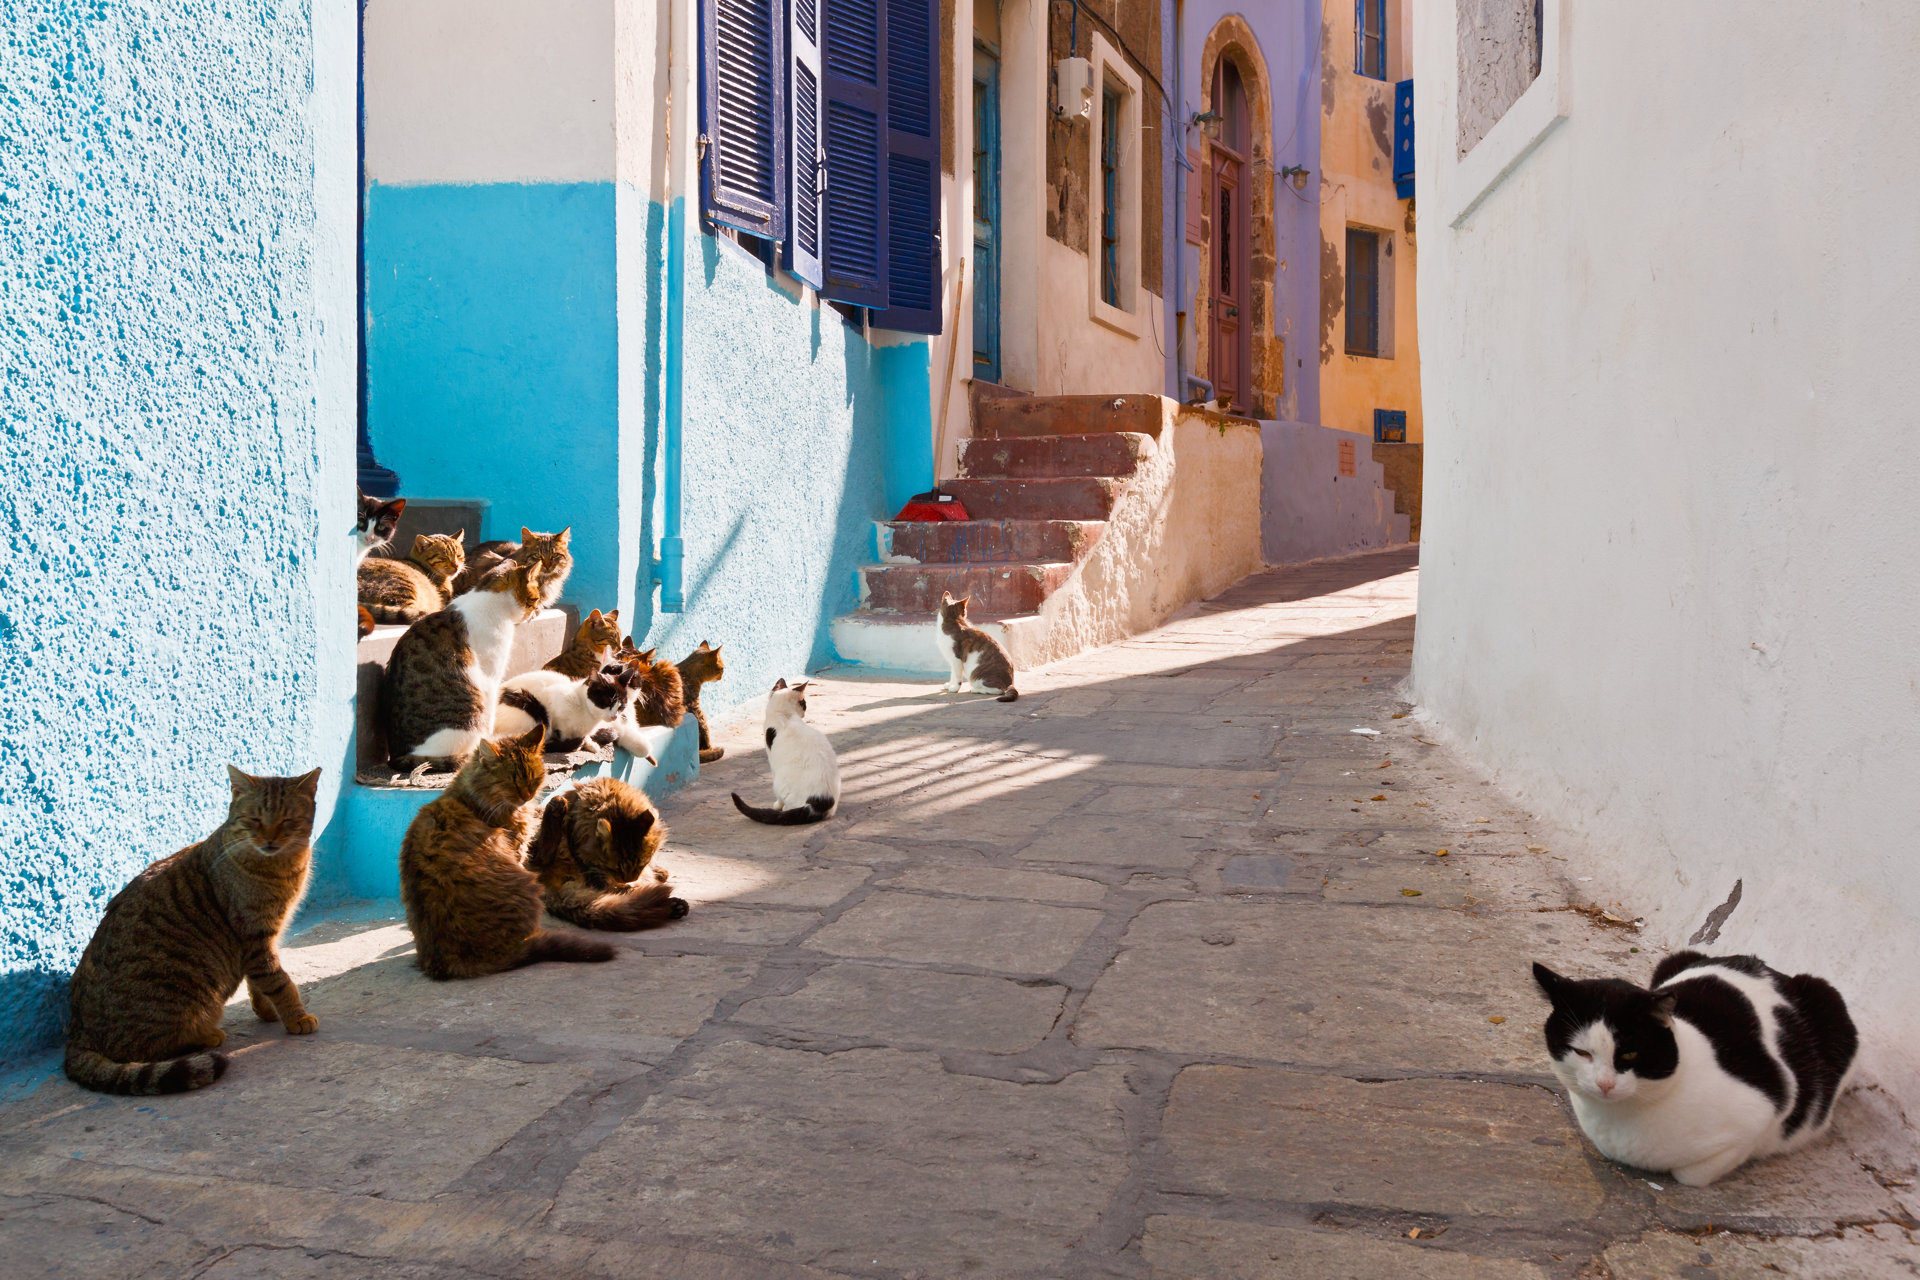 Cats in a street of Mandraki village on Nisyros island